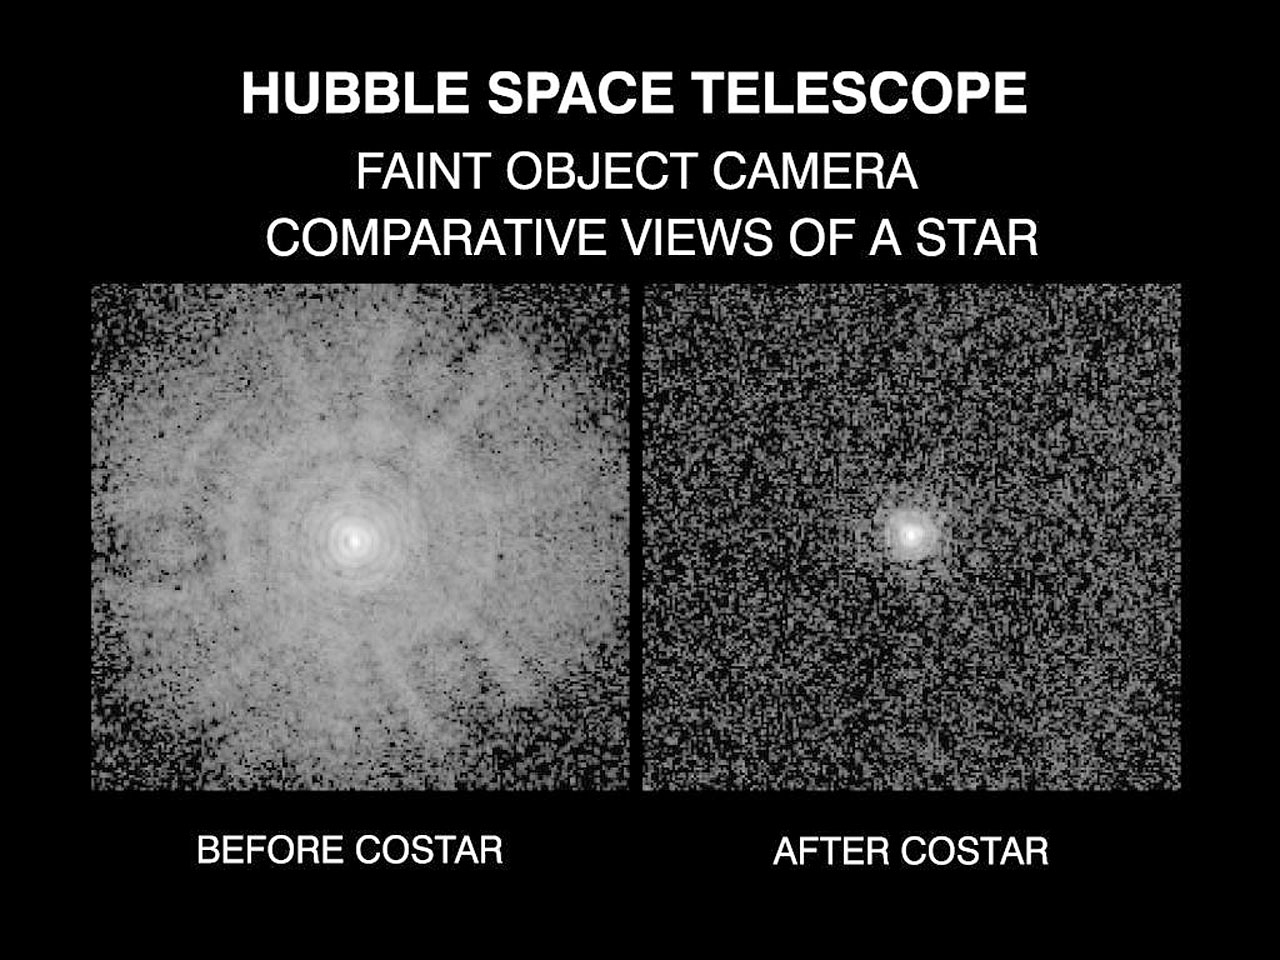 Comparative View Of A Star Before And After The